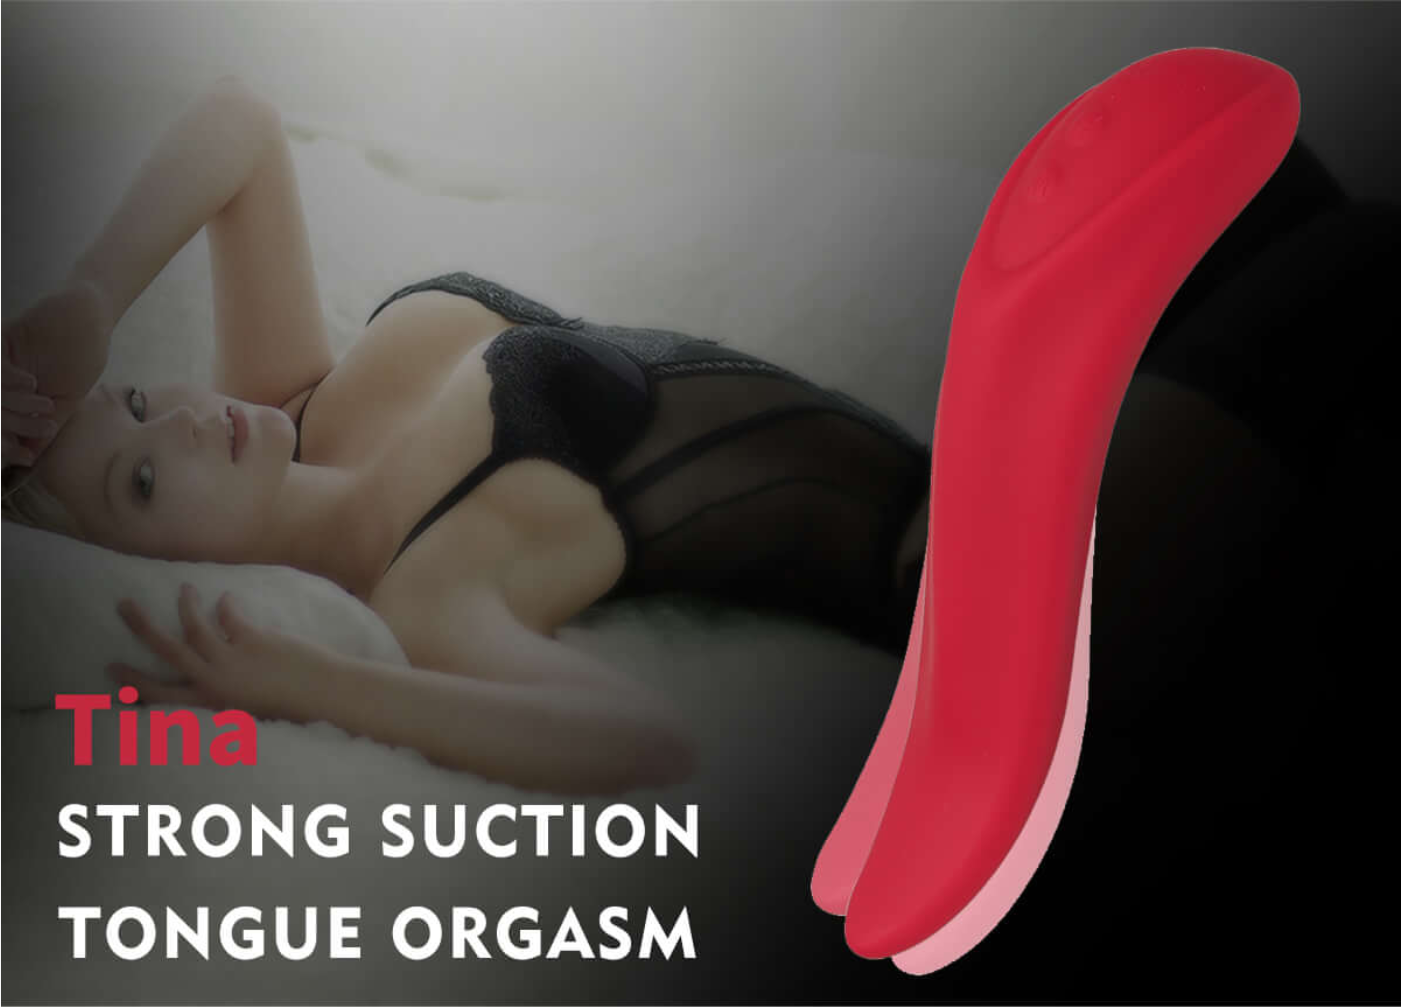 tina-waterproof-luxury-rechargeable-clitoral-g-spot-vibrator-3.png